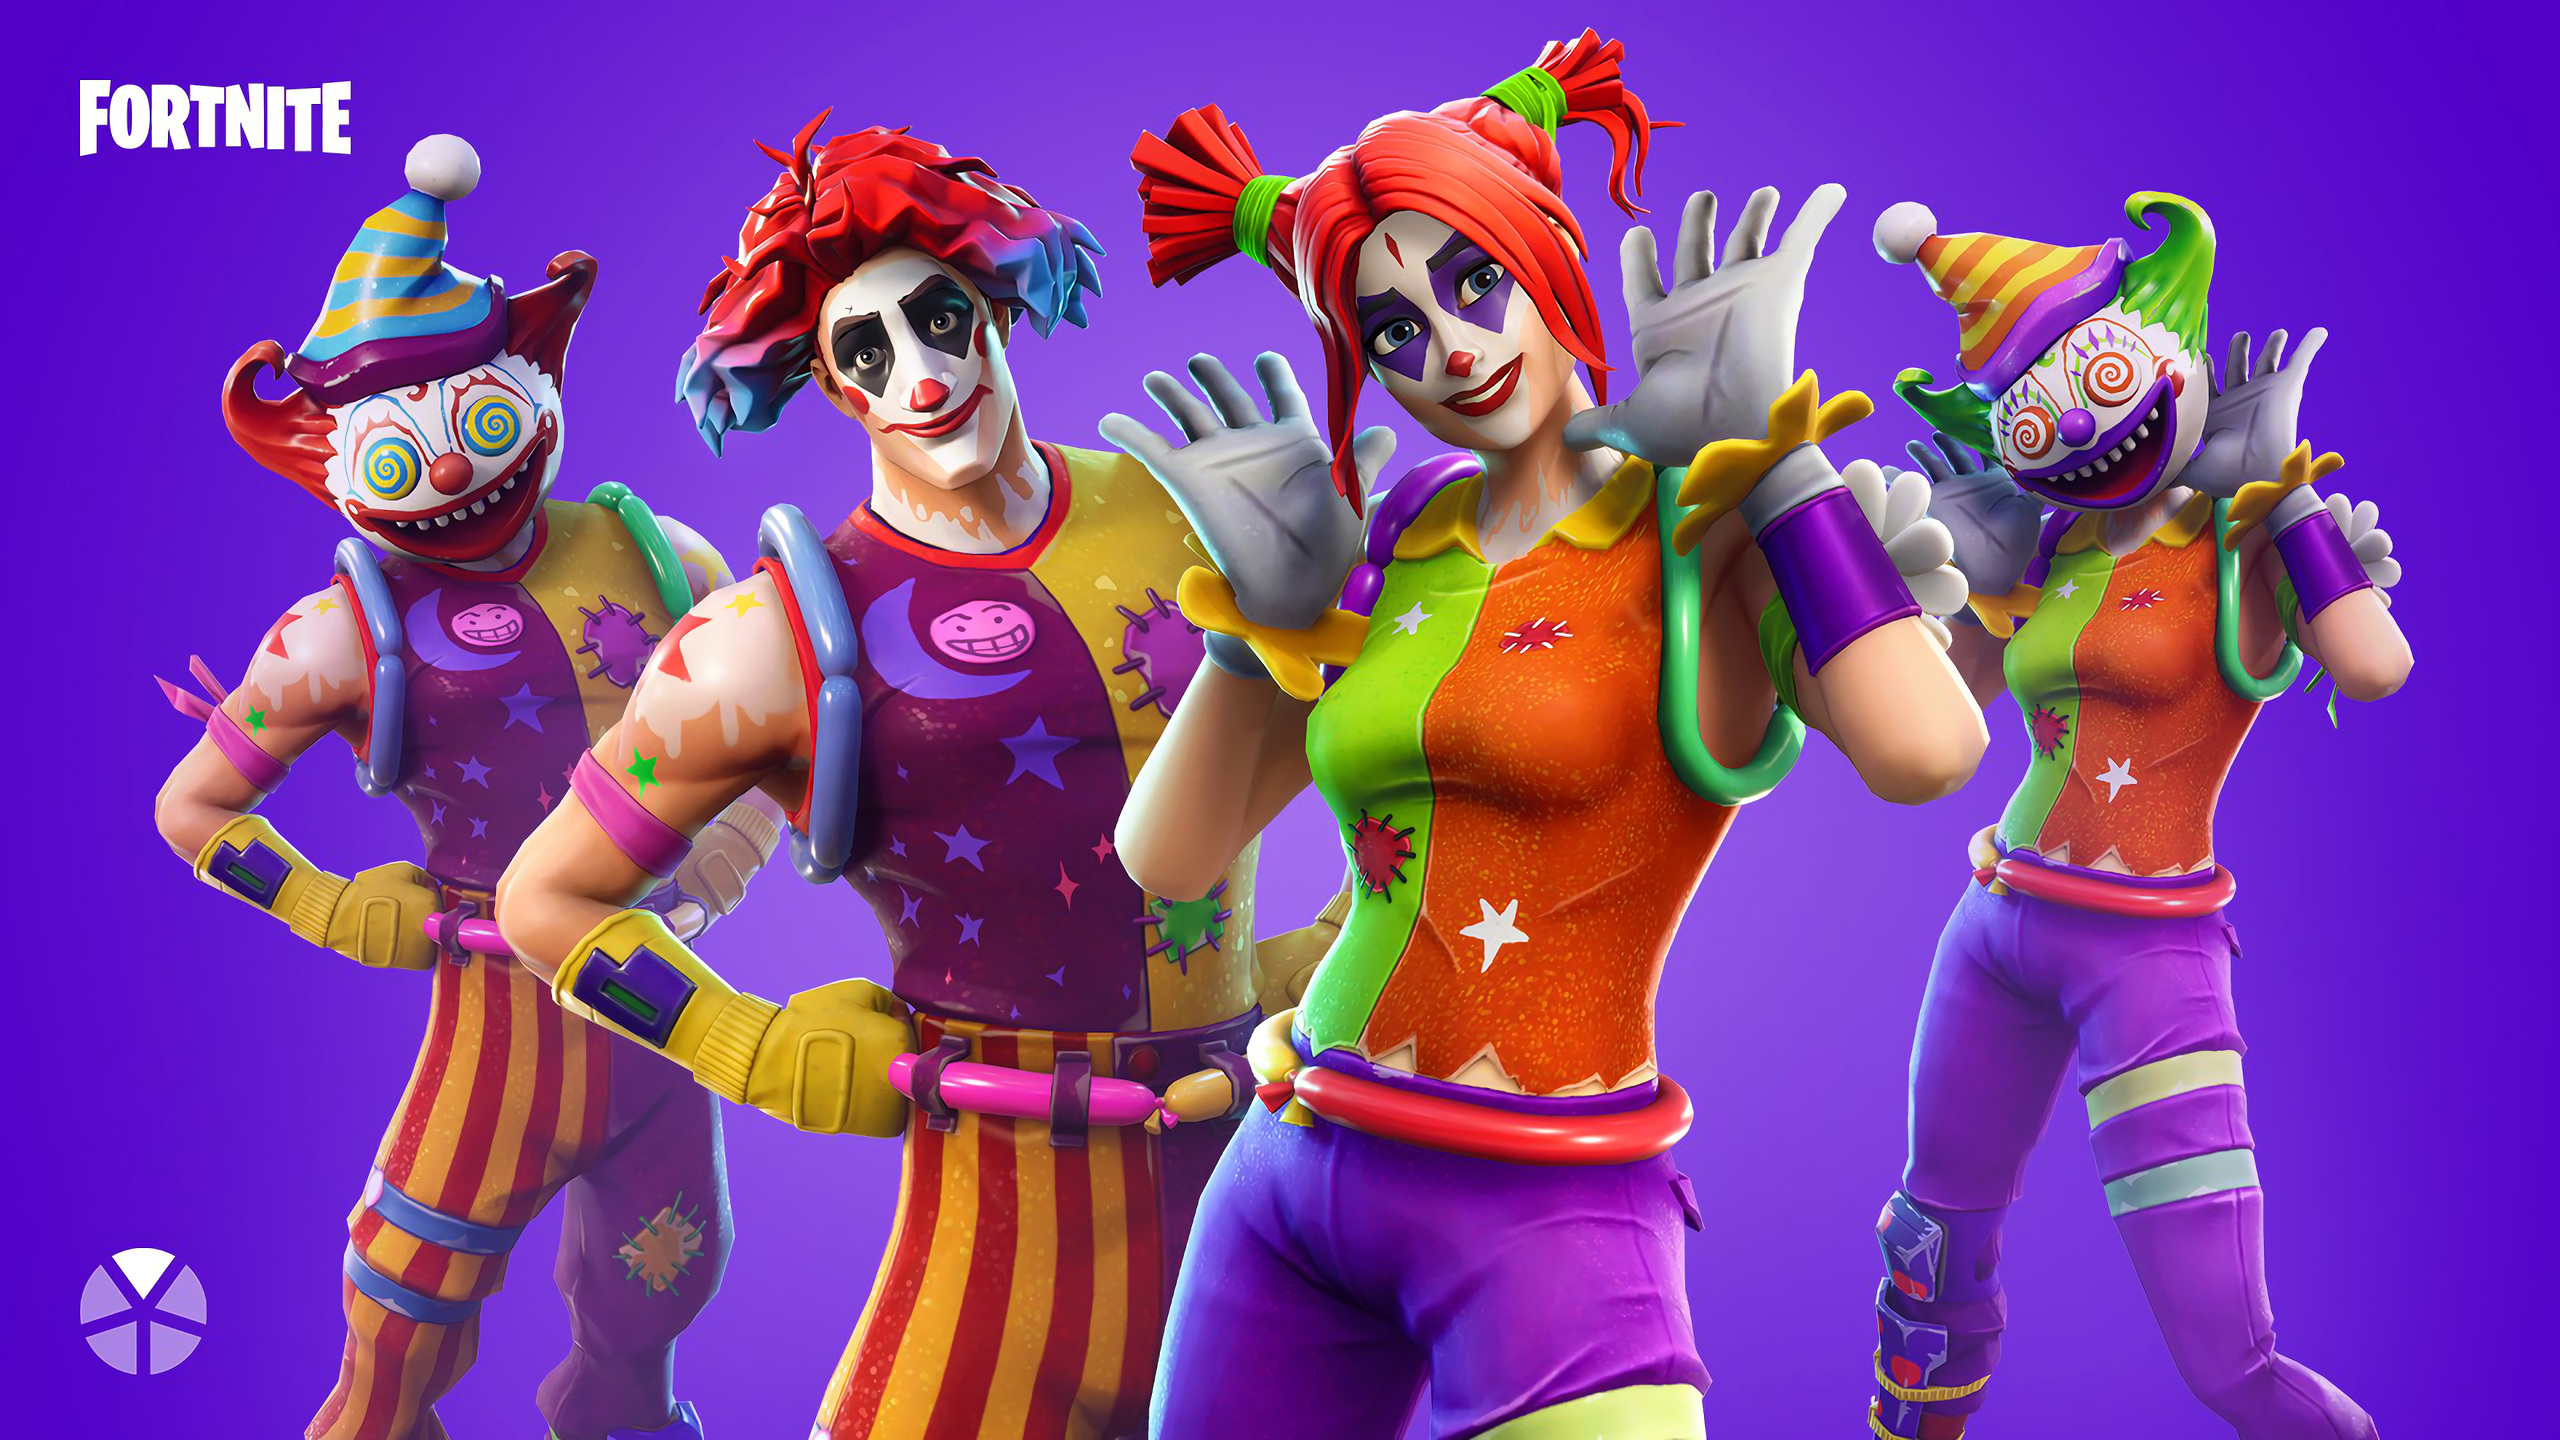 2560x1440 Peekaboo And Nite Fortnite Battle Royale Outfit 4k